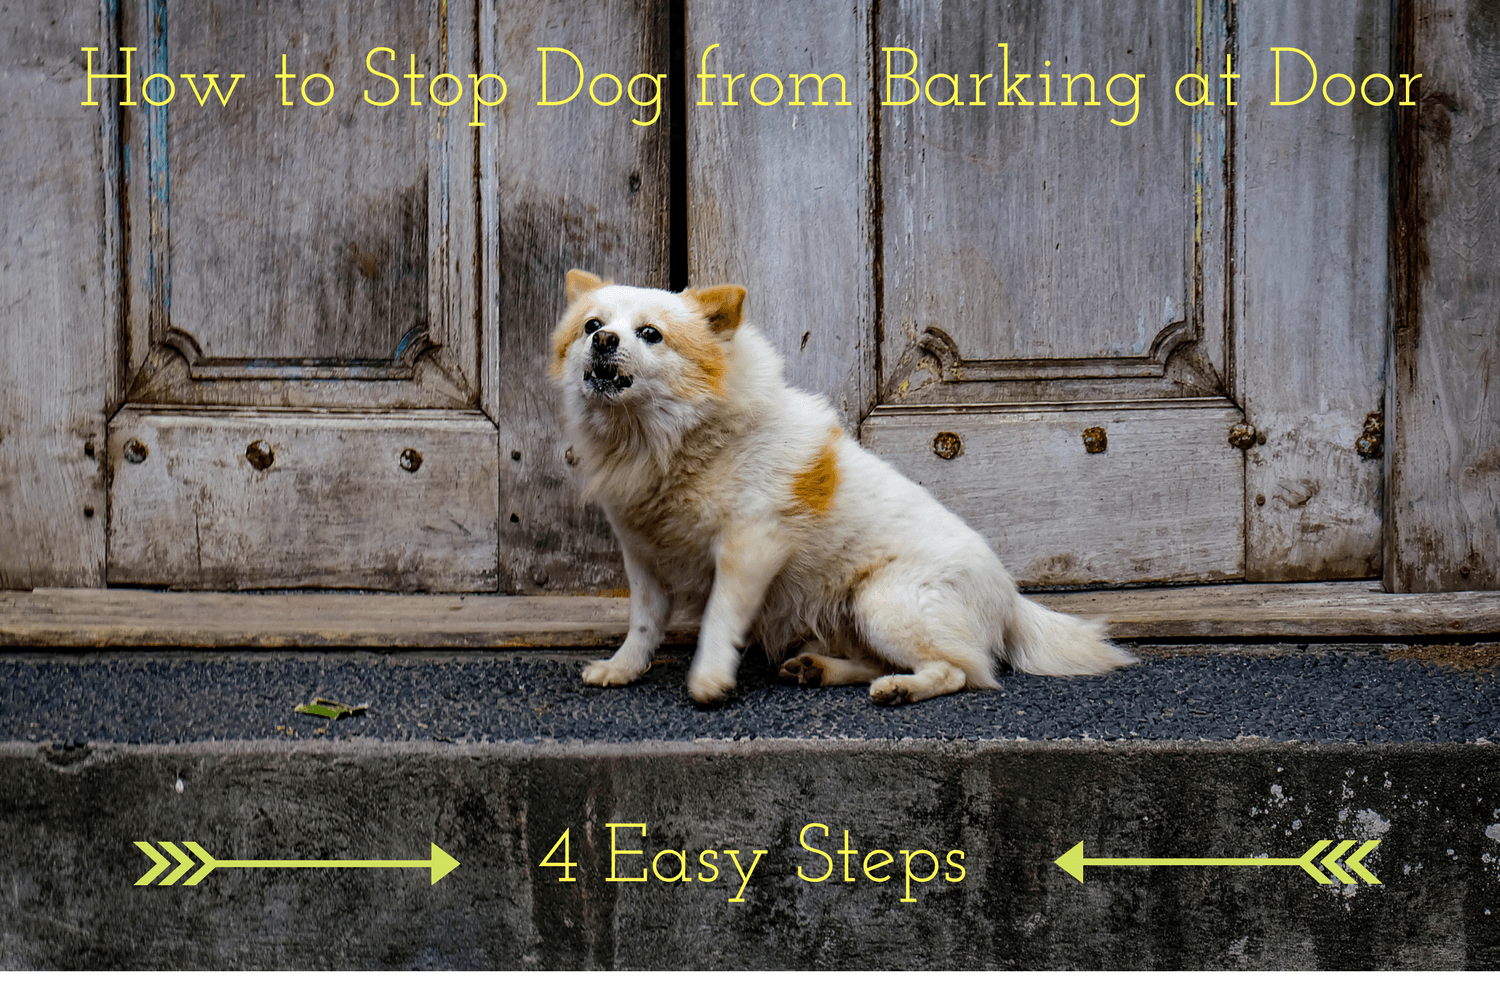 How to Stop Dog from Barking at Door in 4 Easy Steps